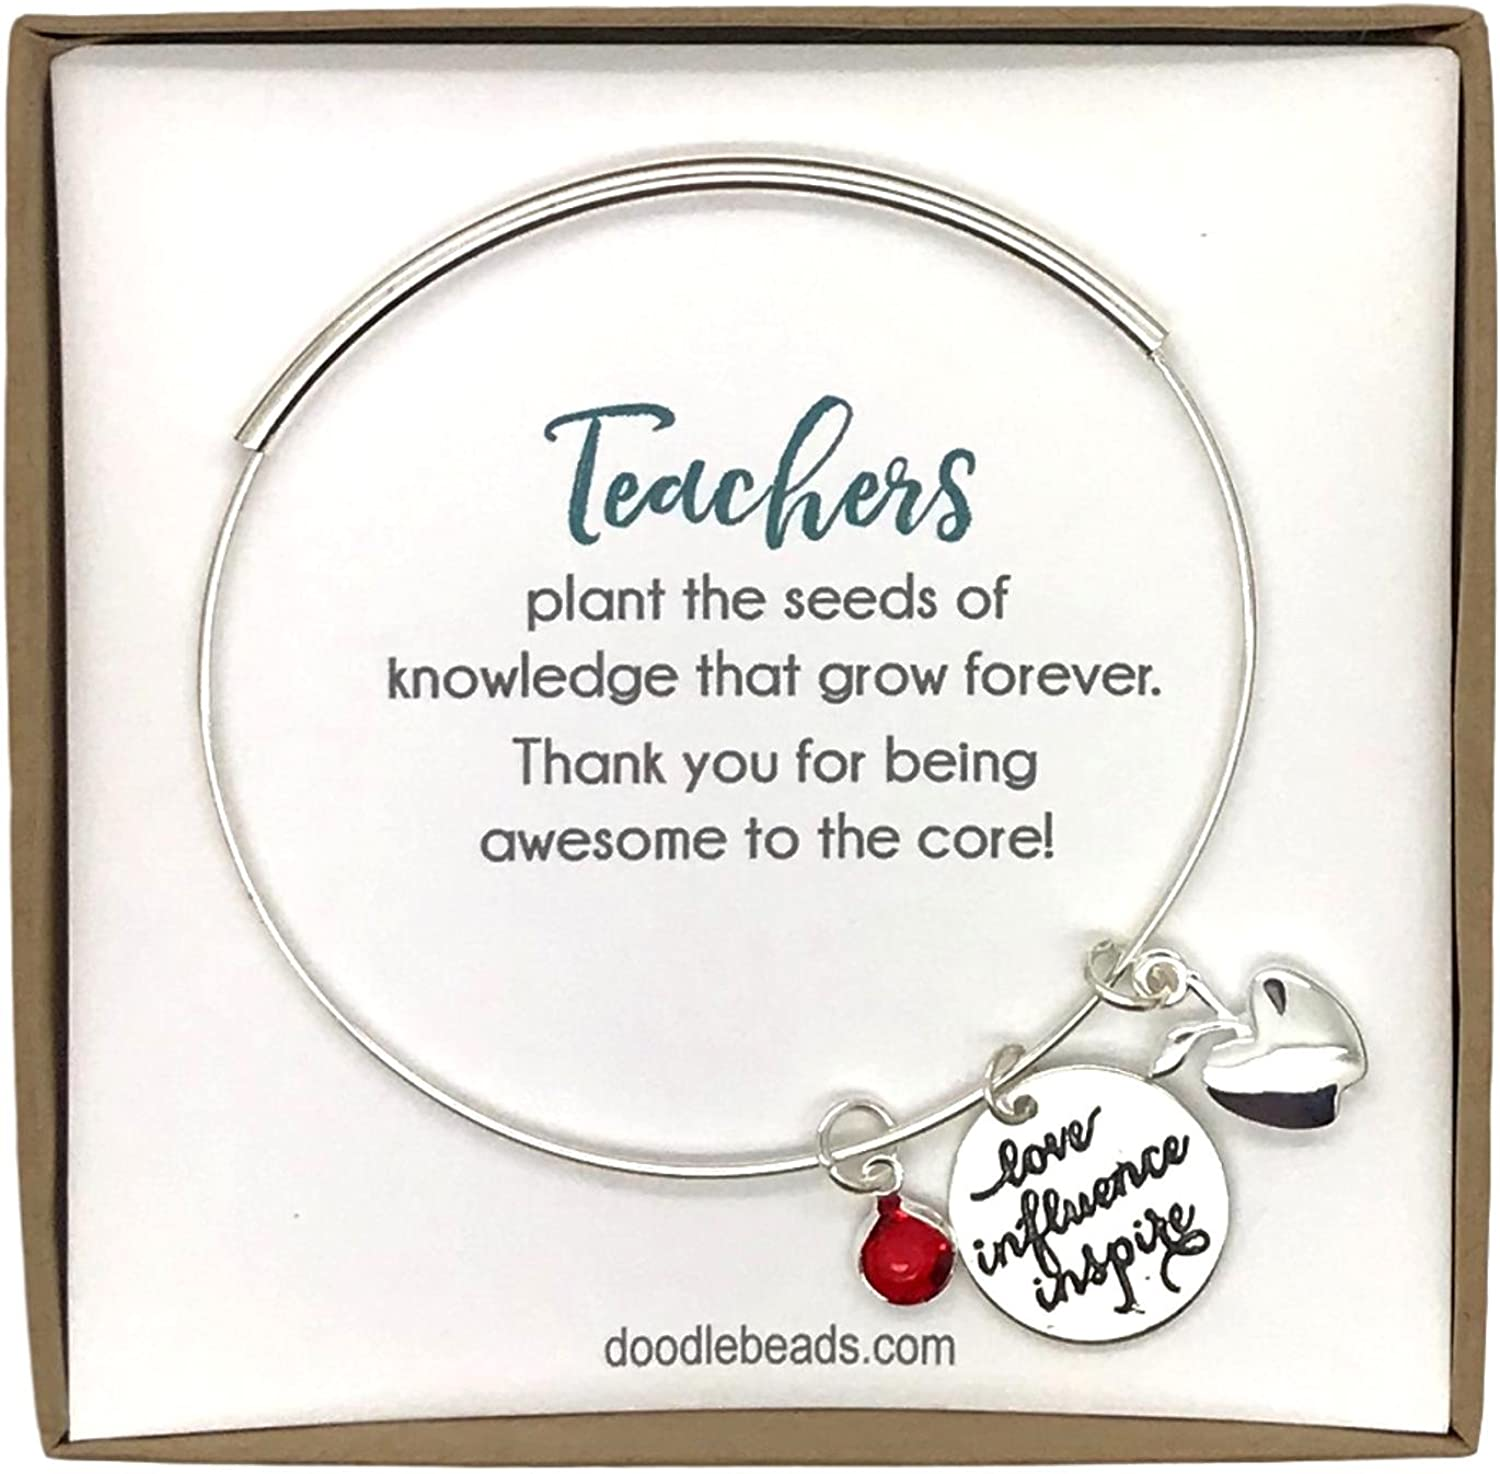 Doodle Beads Teacher Gift Necklace - Apple Bracelet, Teachers Plant Seeds of Knowledge Adjustable Bangle Bracelet